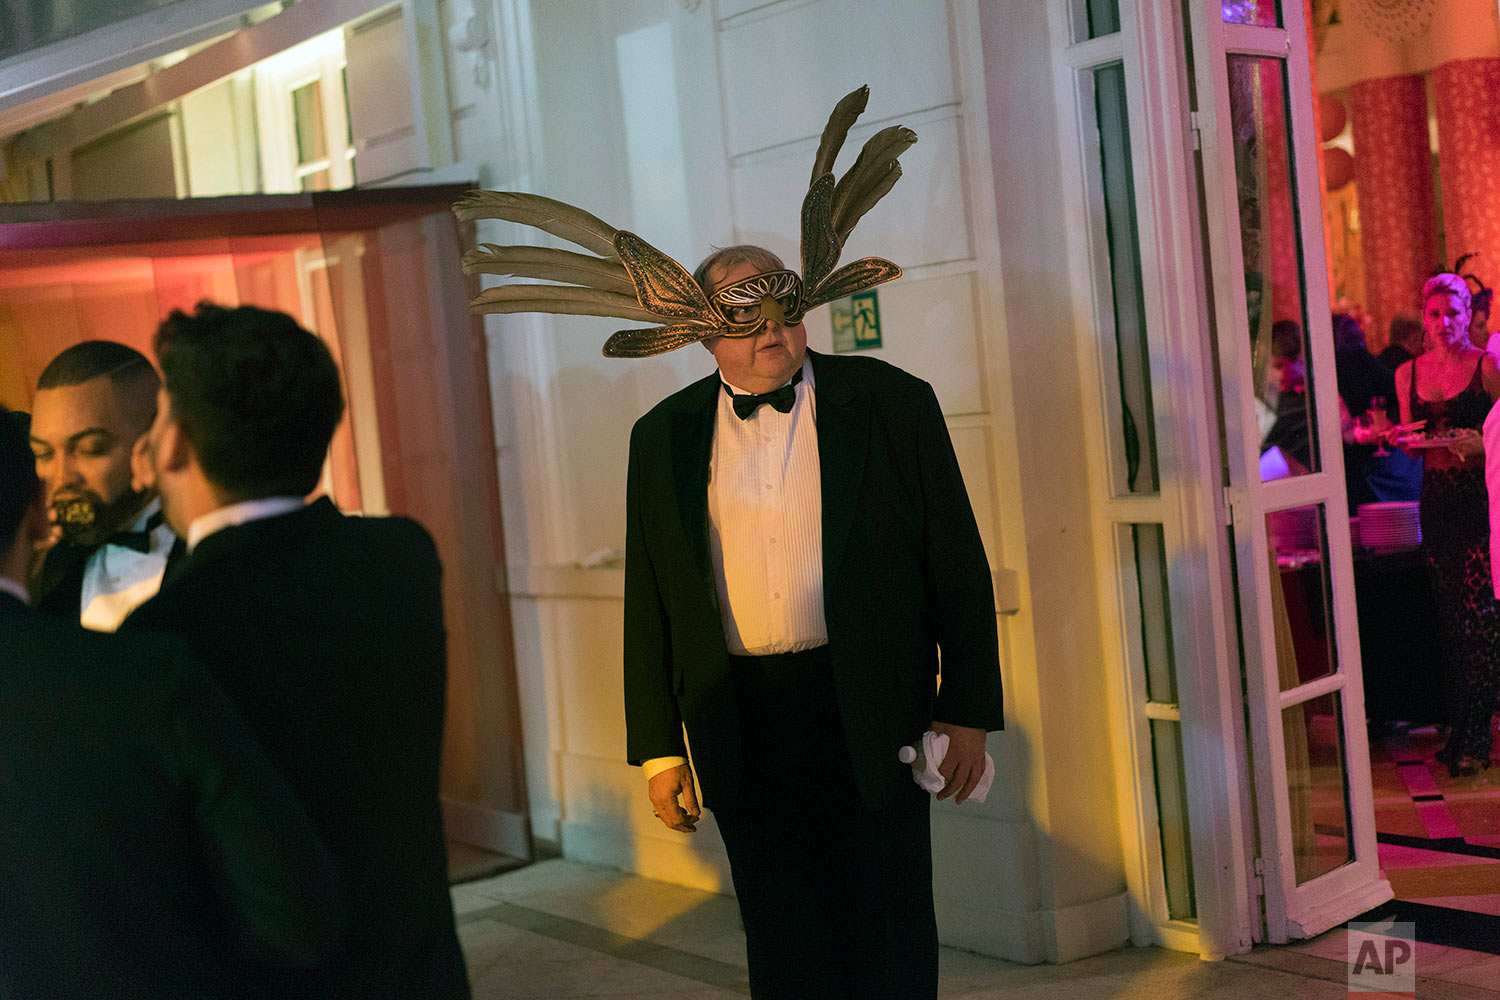 """A guest wearing a mask attends a traditional Carnival ball at the Copacabana Palace hotel in Rio de Janeiro, Brazil, Saturday, Feb. 25, 2017. In stark contrast to the hundreds of hard-charging street parties across Rio that are open to anyone, the """"Baile do Copa"""" bills itself as a fairytale event where the country's elite can see and be seen in a hotel known for both opulence and a lengthy tradition of welcoming world leaders and stars. (AP Photo/Leo Correa)"""